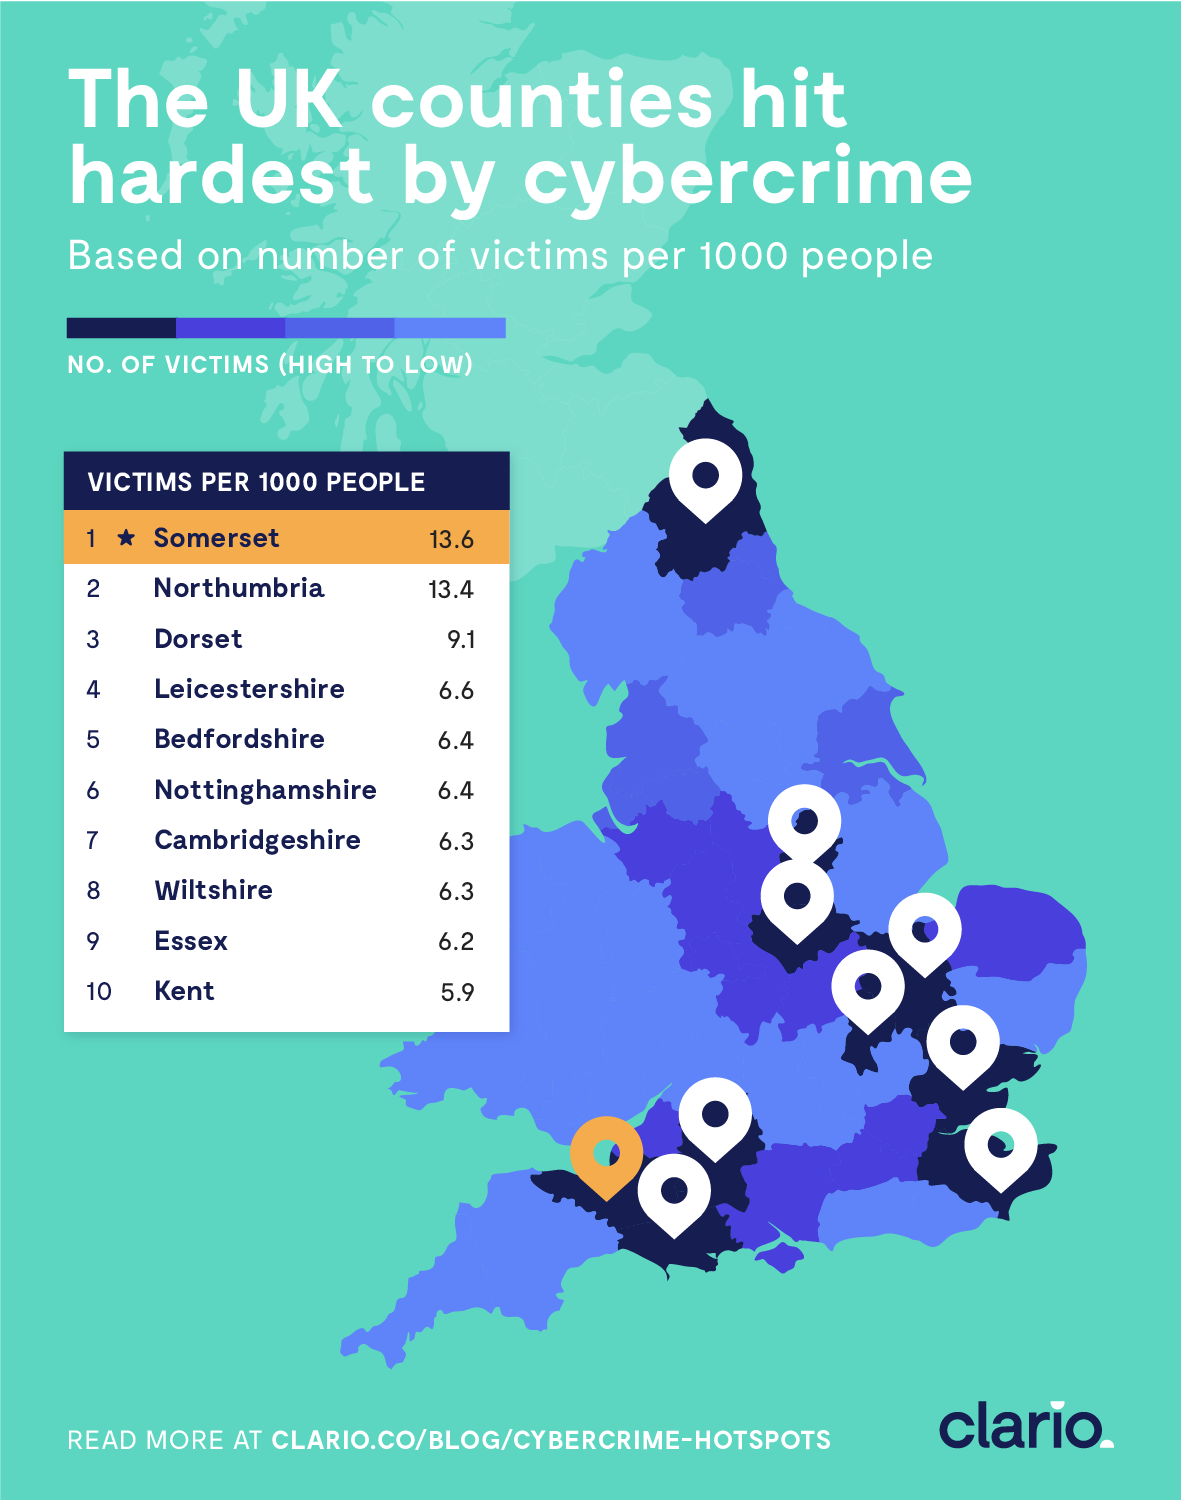 the UK countries hit hardest by cybercrime